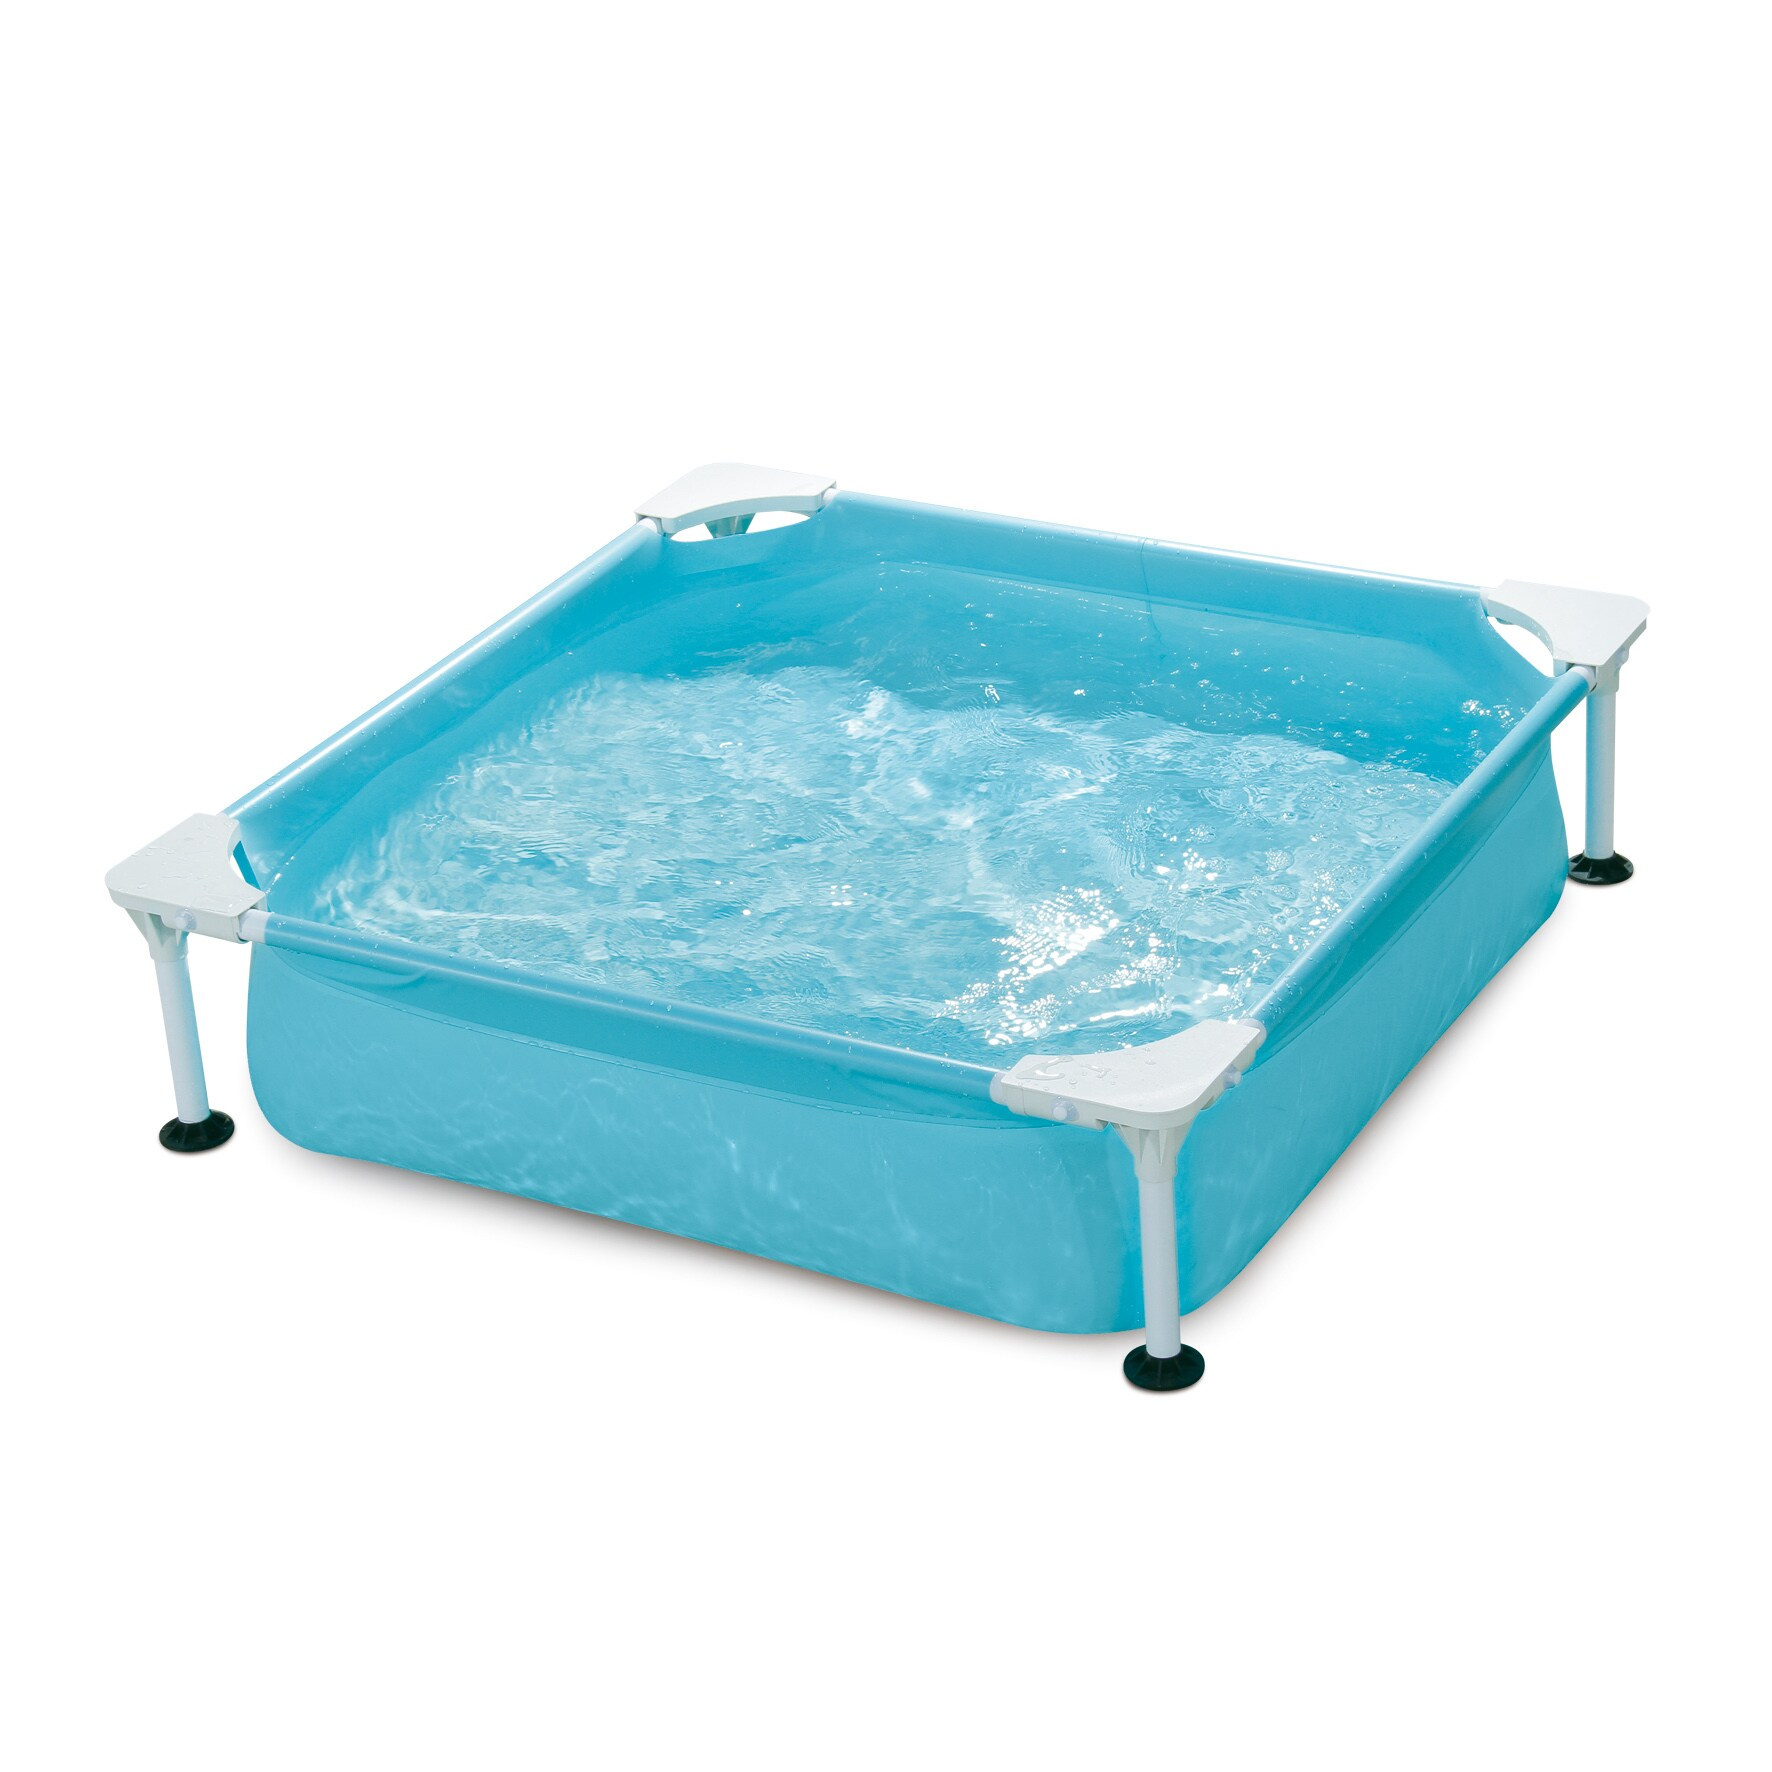 Small Square Frame Kiddie Pool